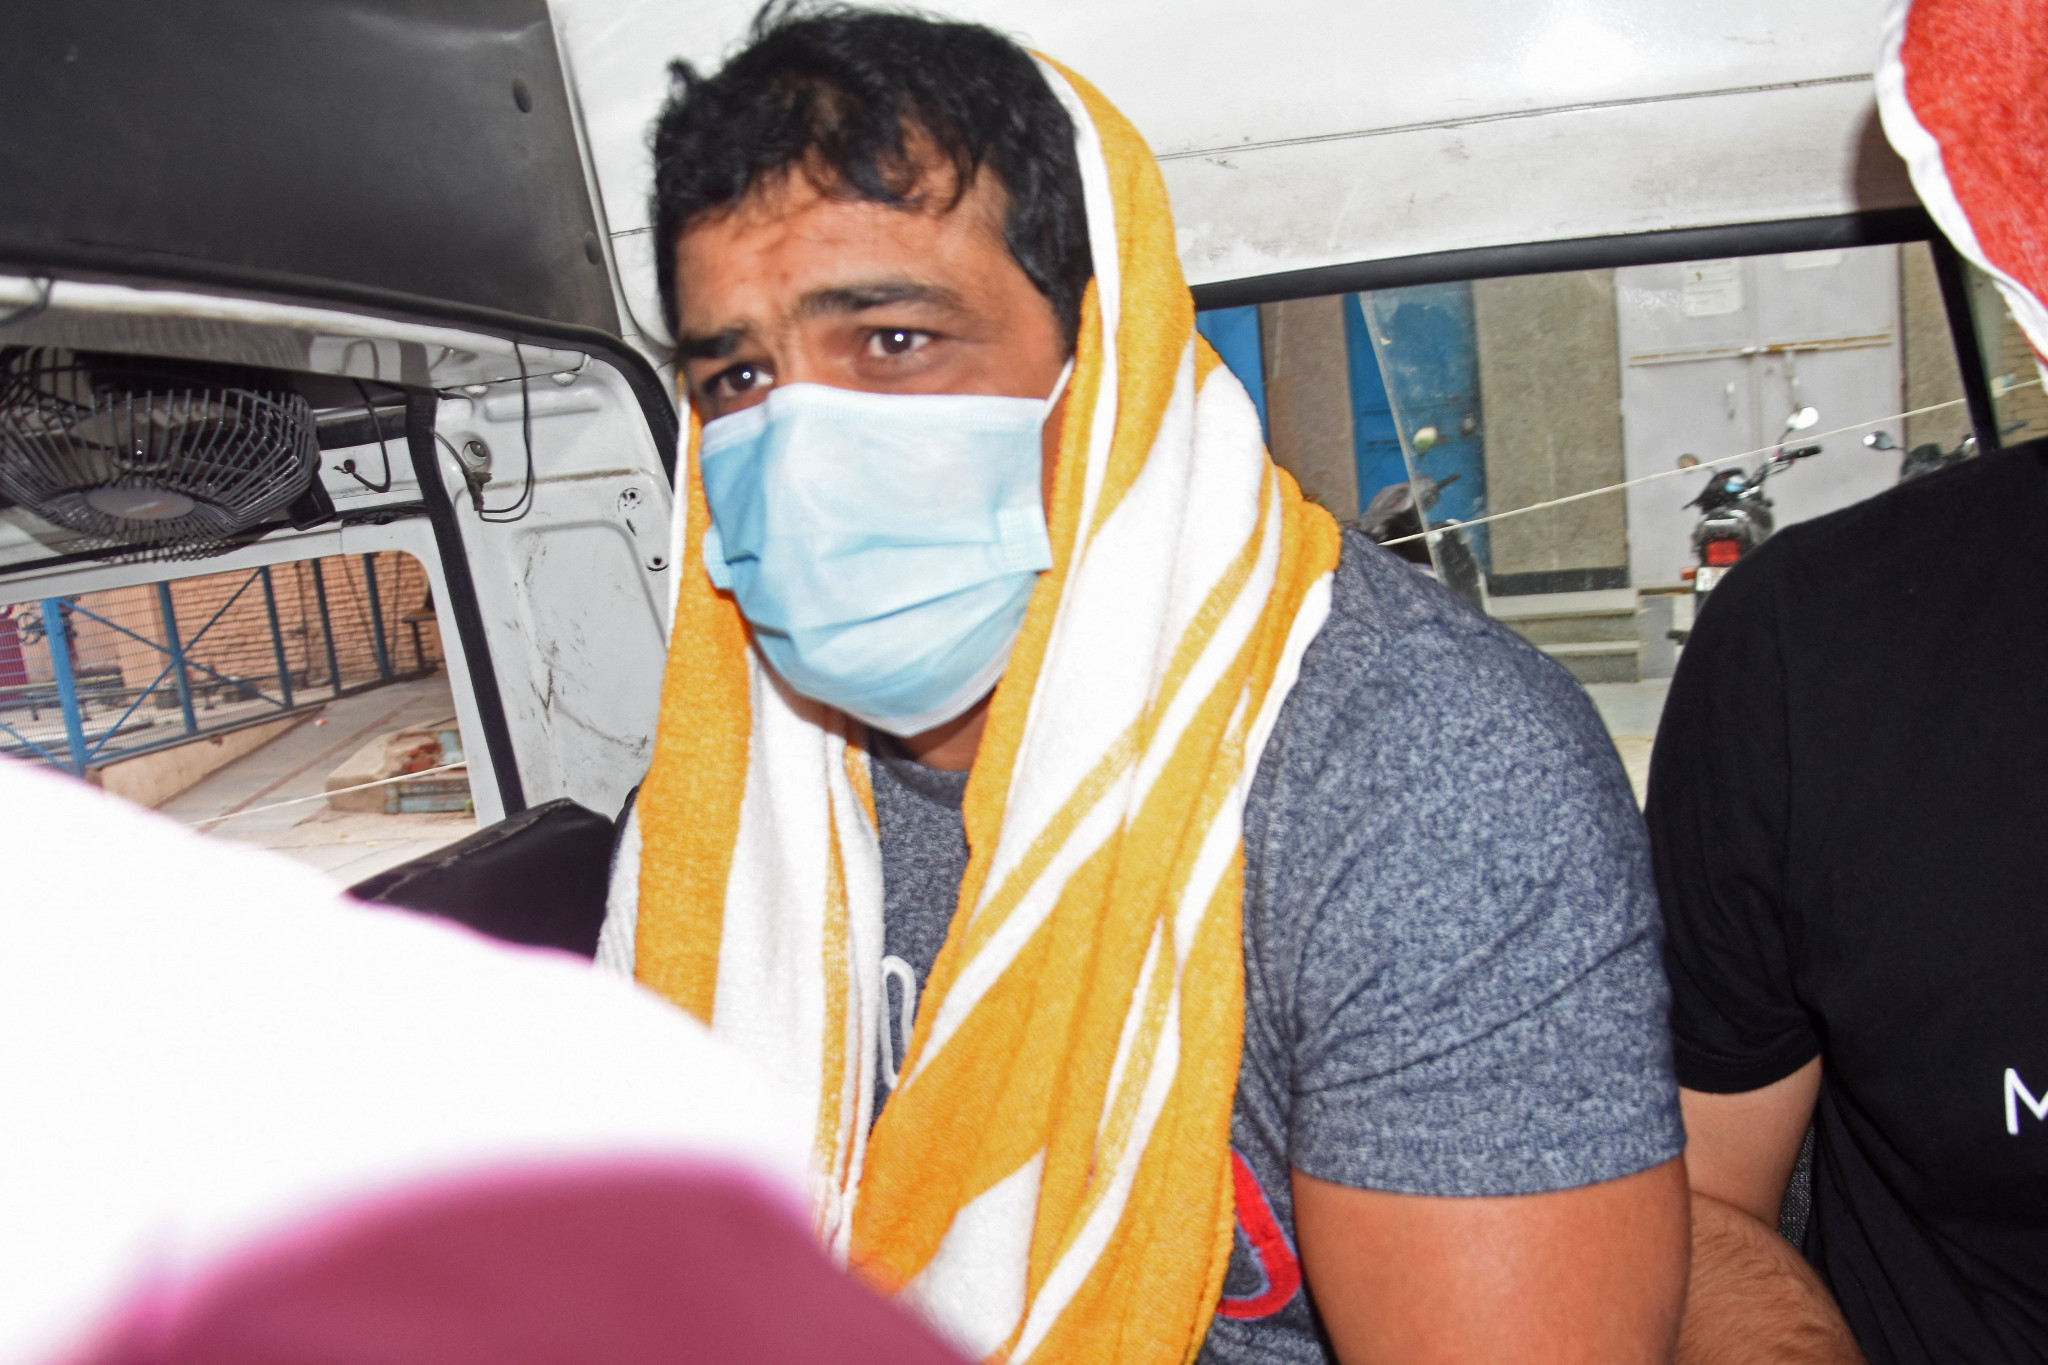 Wrestling Federation of India official says sport's image impacted after Kumar arrest in murder case